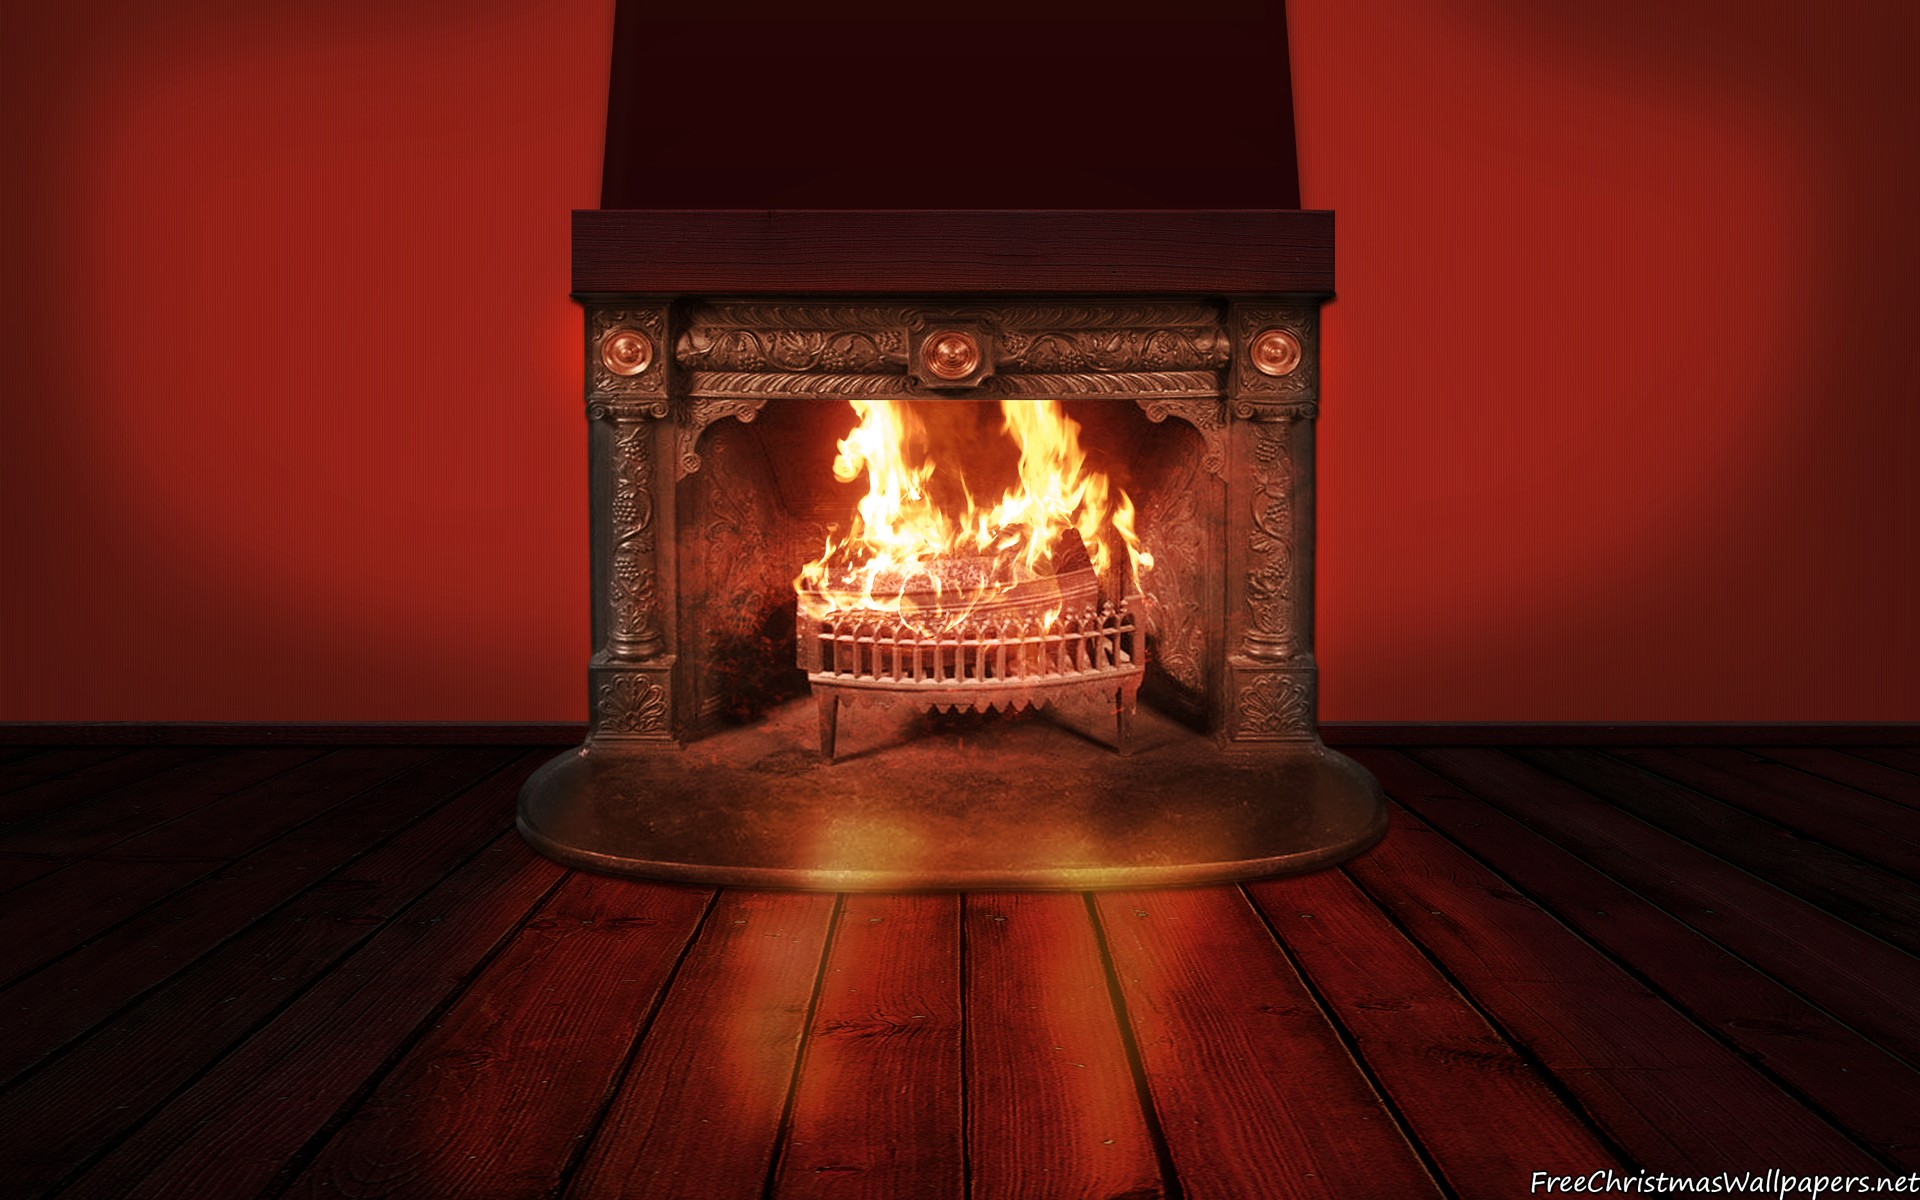 Fireplace Background Wallpaper Freechristmaswallpapers Net